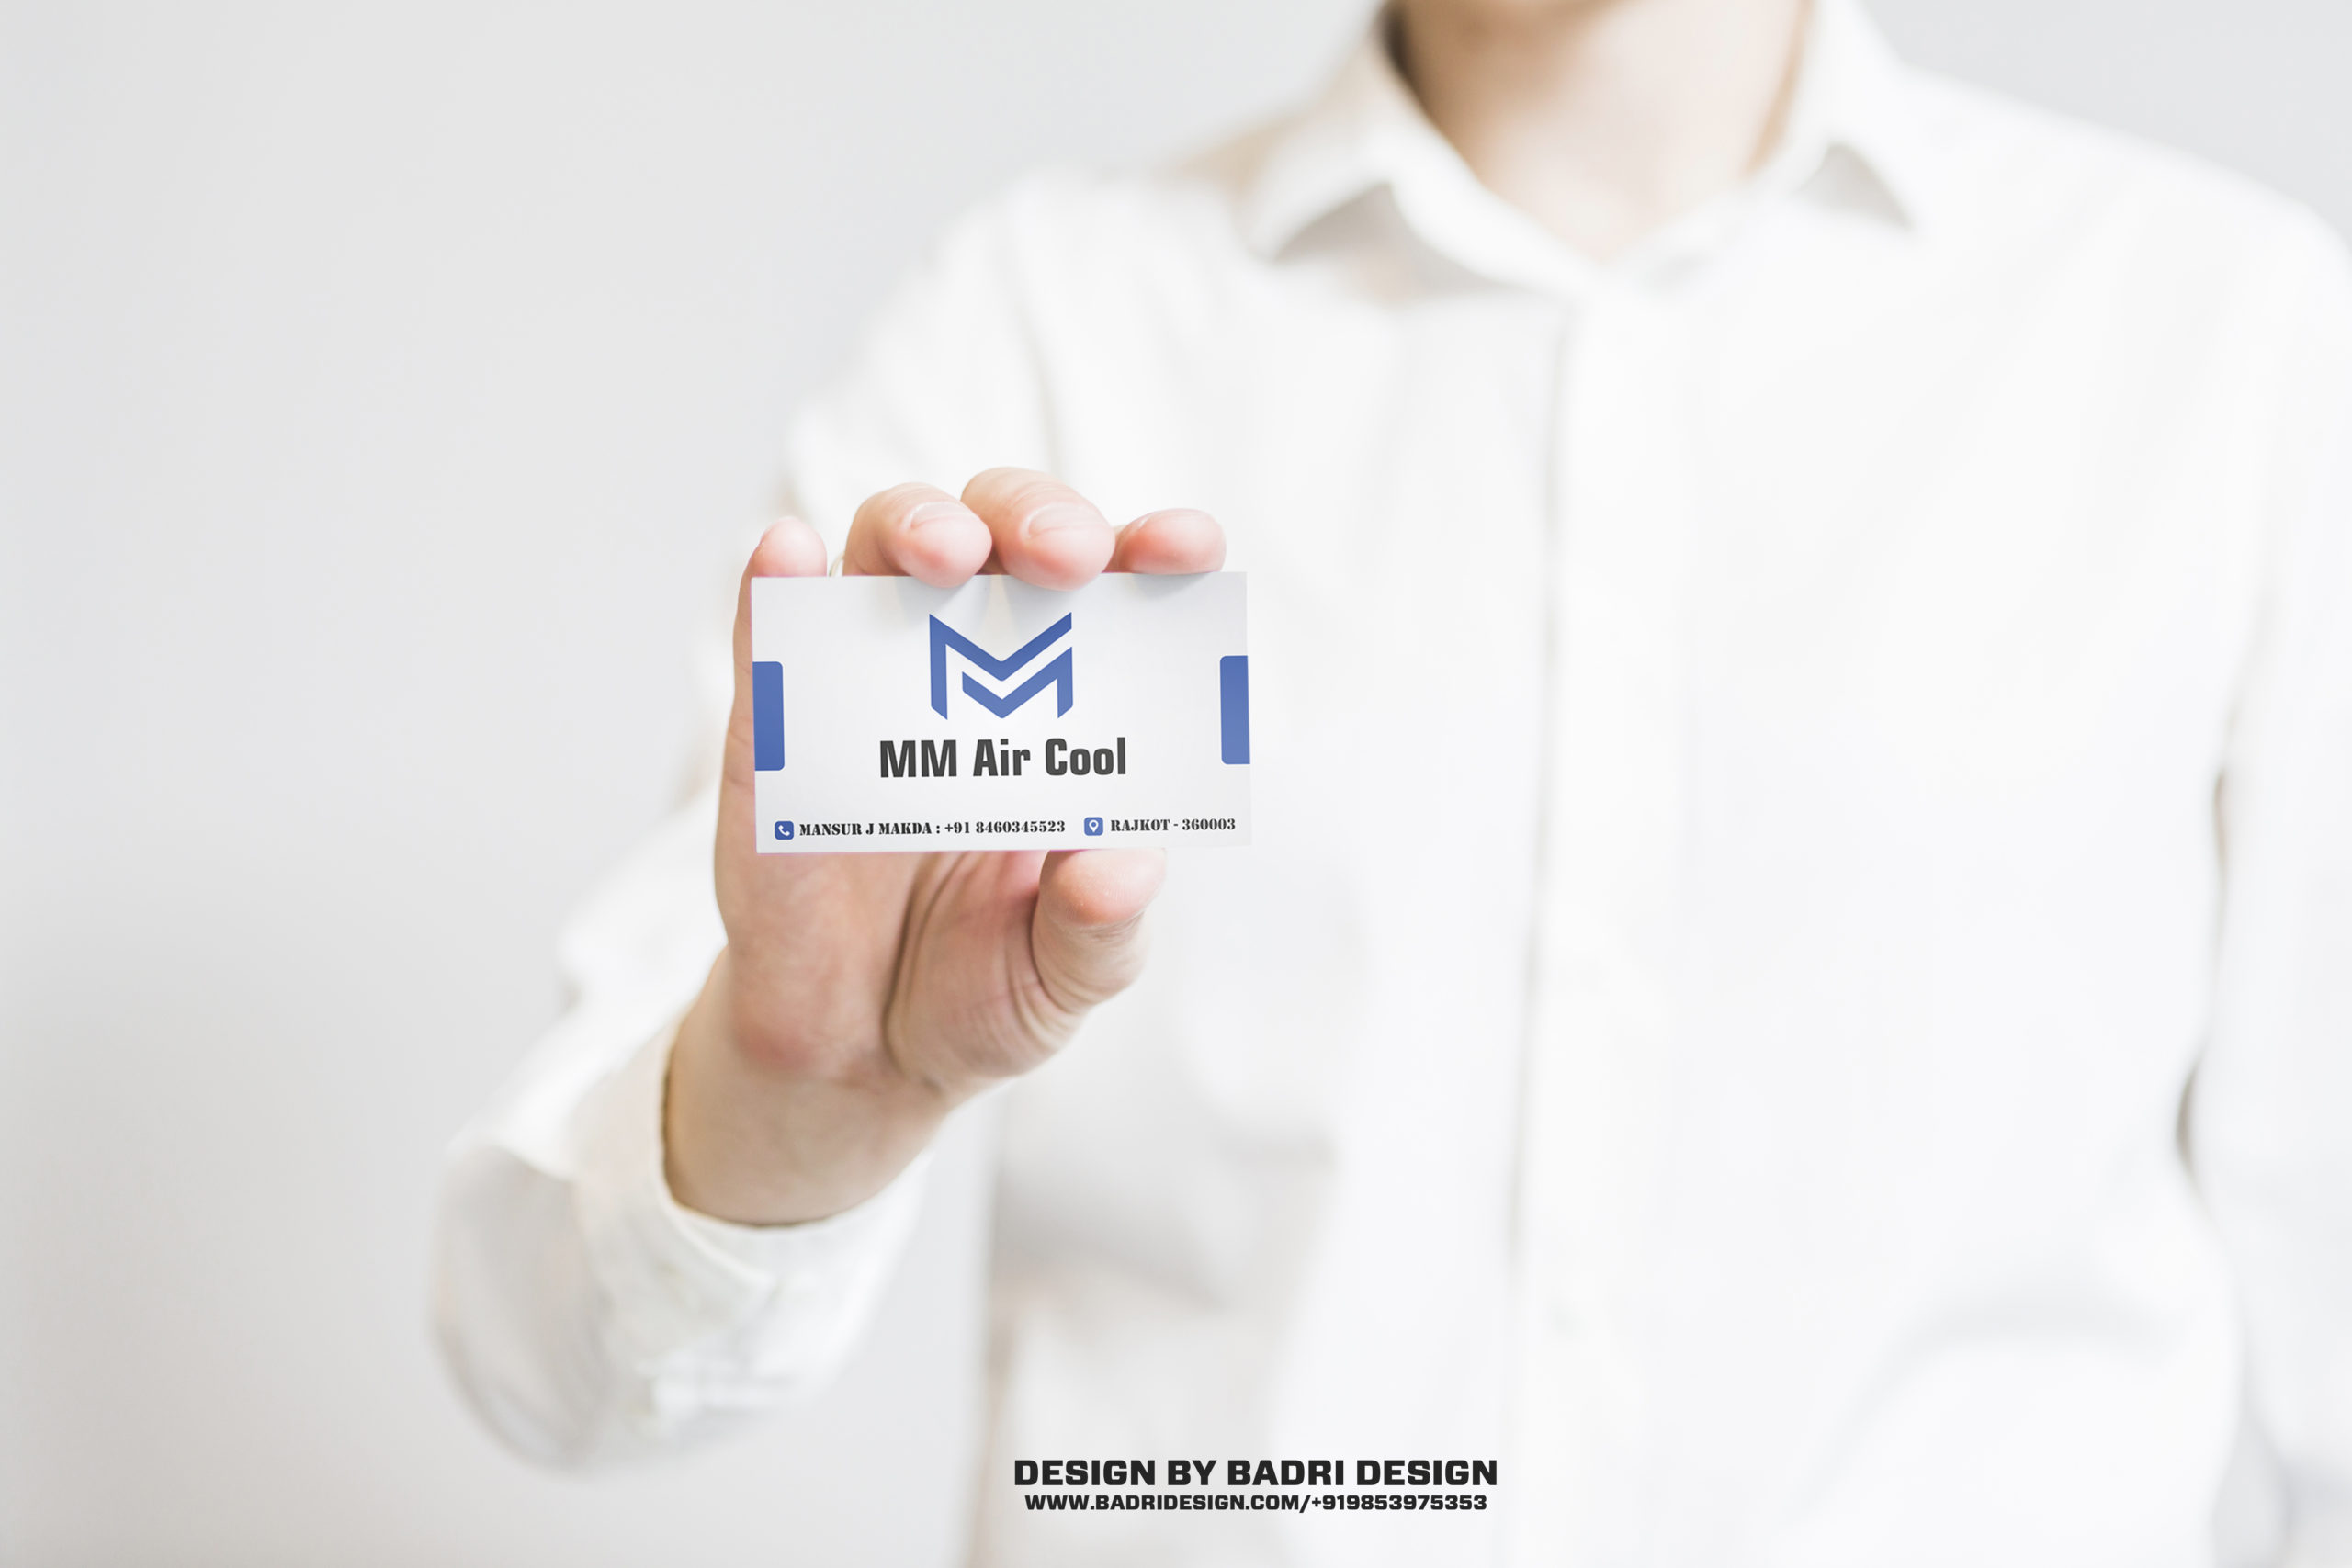 AC services repair company business card design by Badri Design